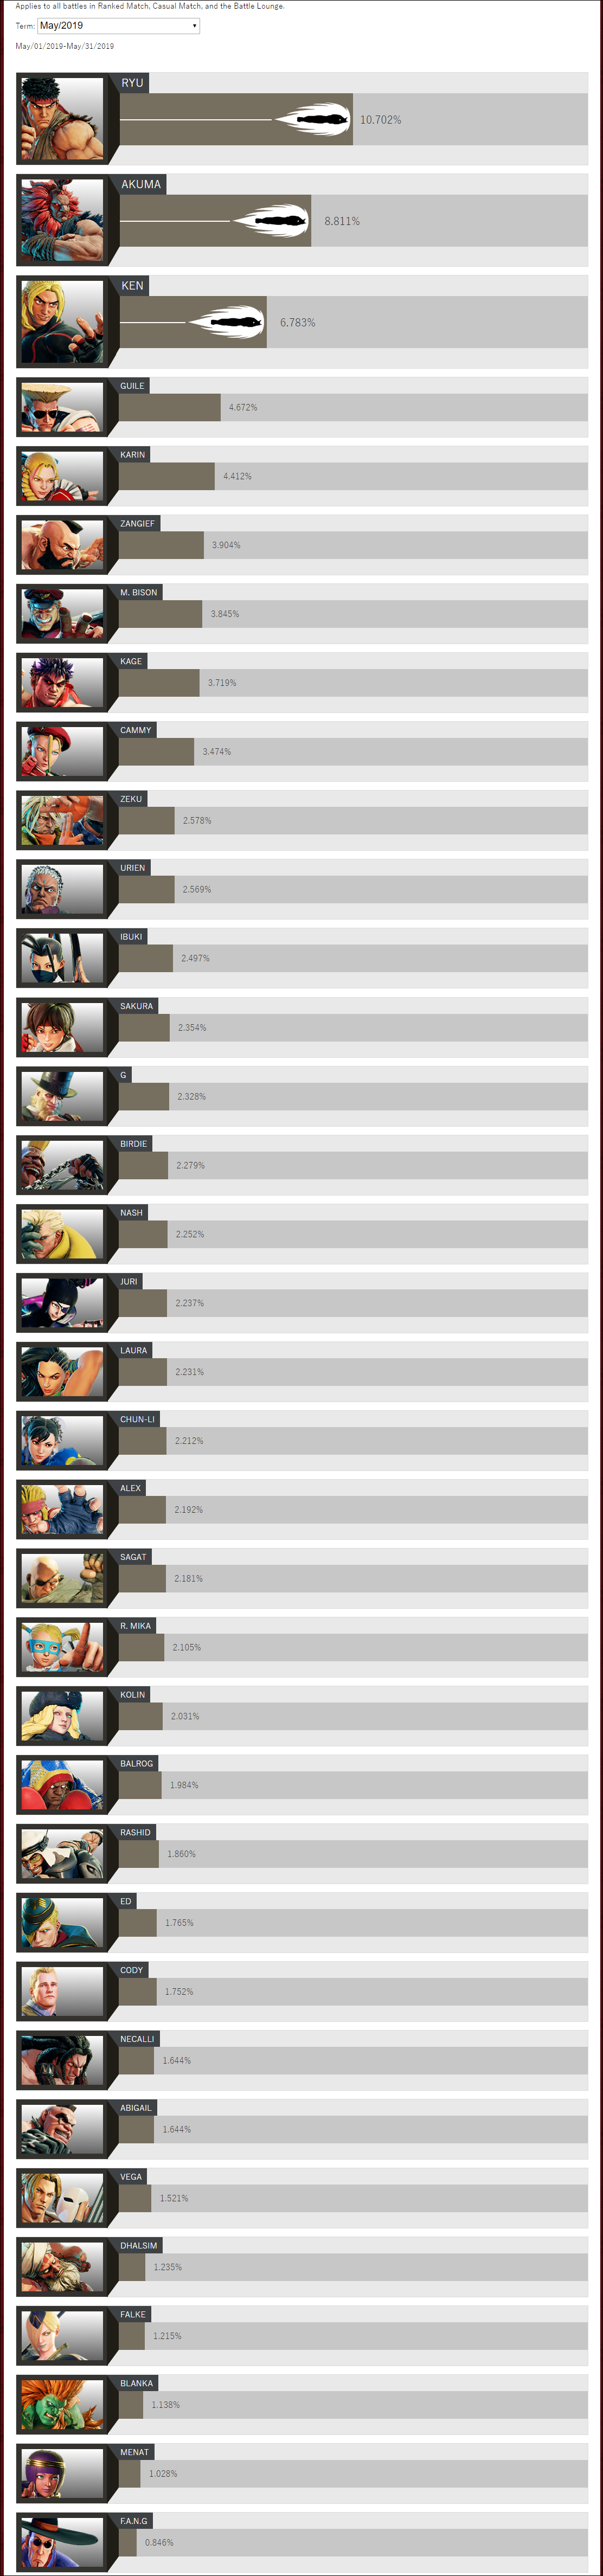 Street Fighter 5 May 2019 stats 1 out of 2 image gallery